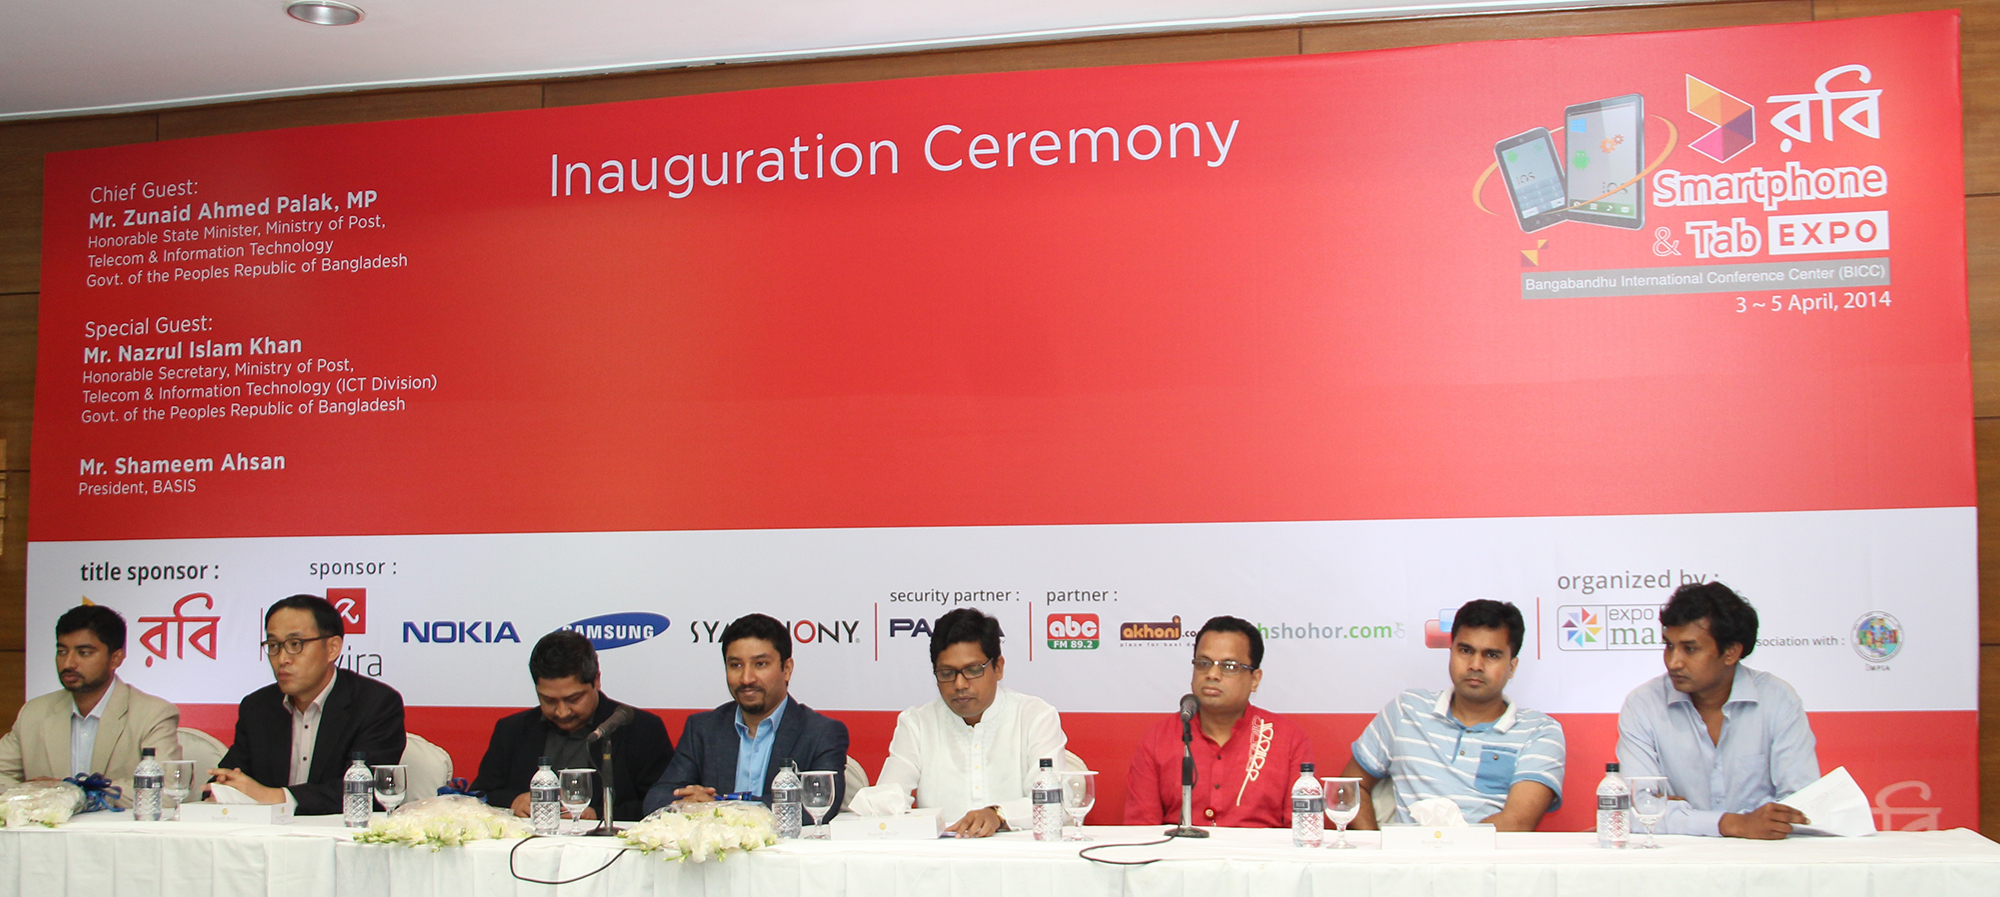 Robi Smartphone & Tab Expo Opening Ceremony